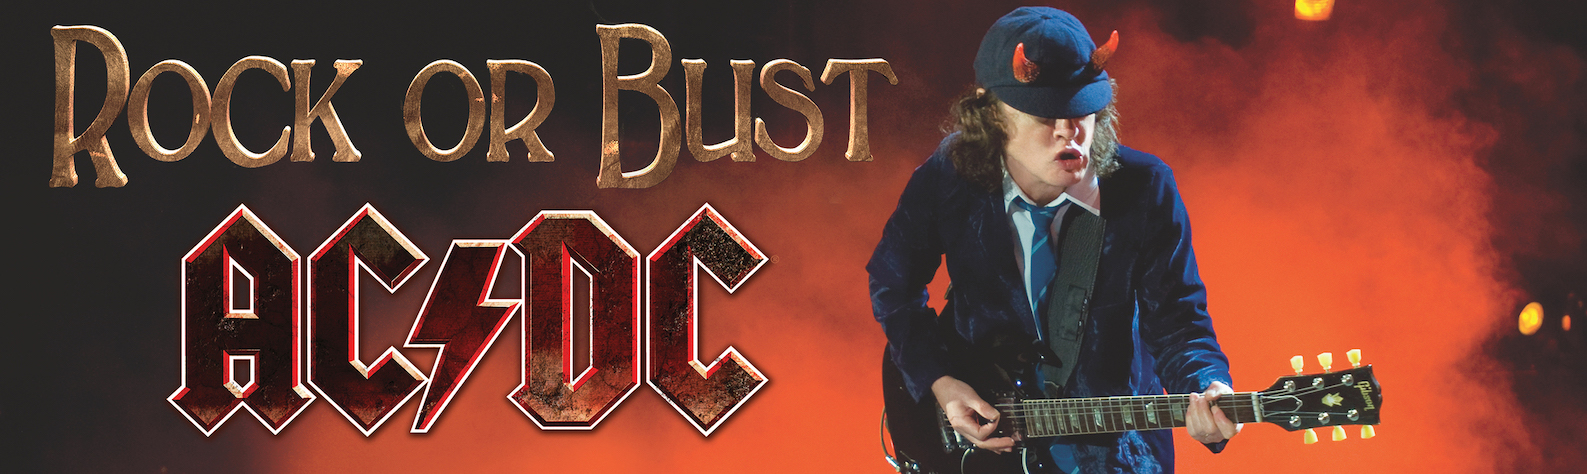 ACDC-Banner-Photo